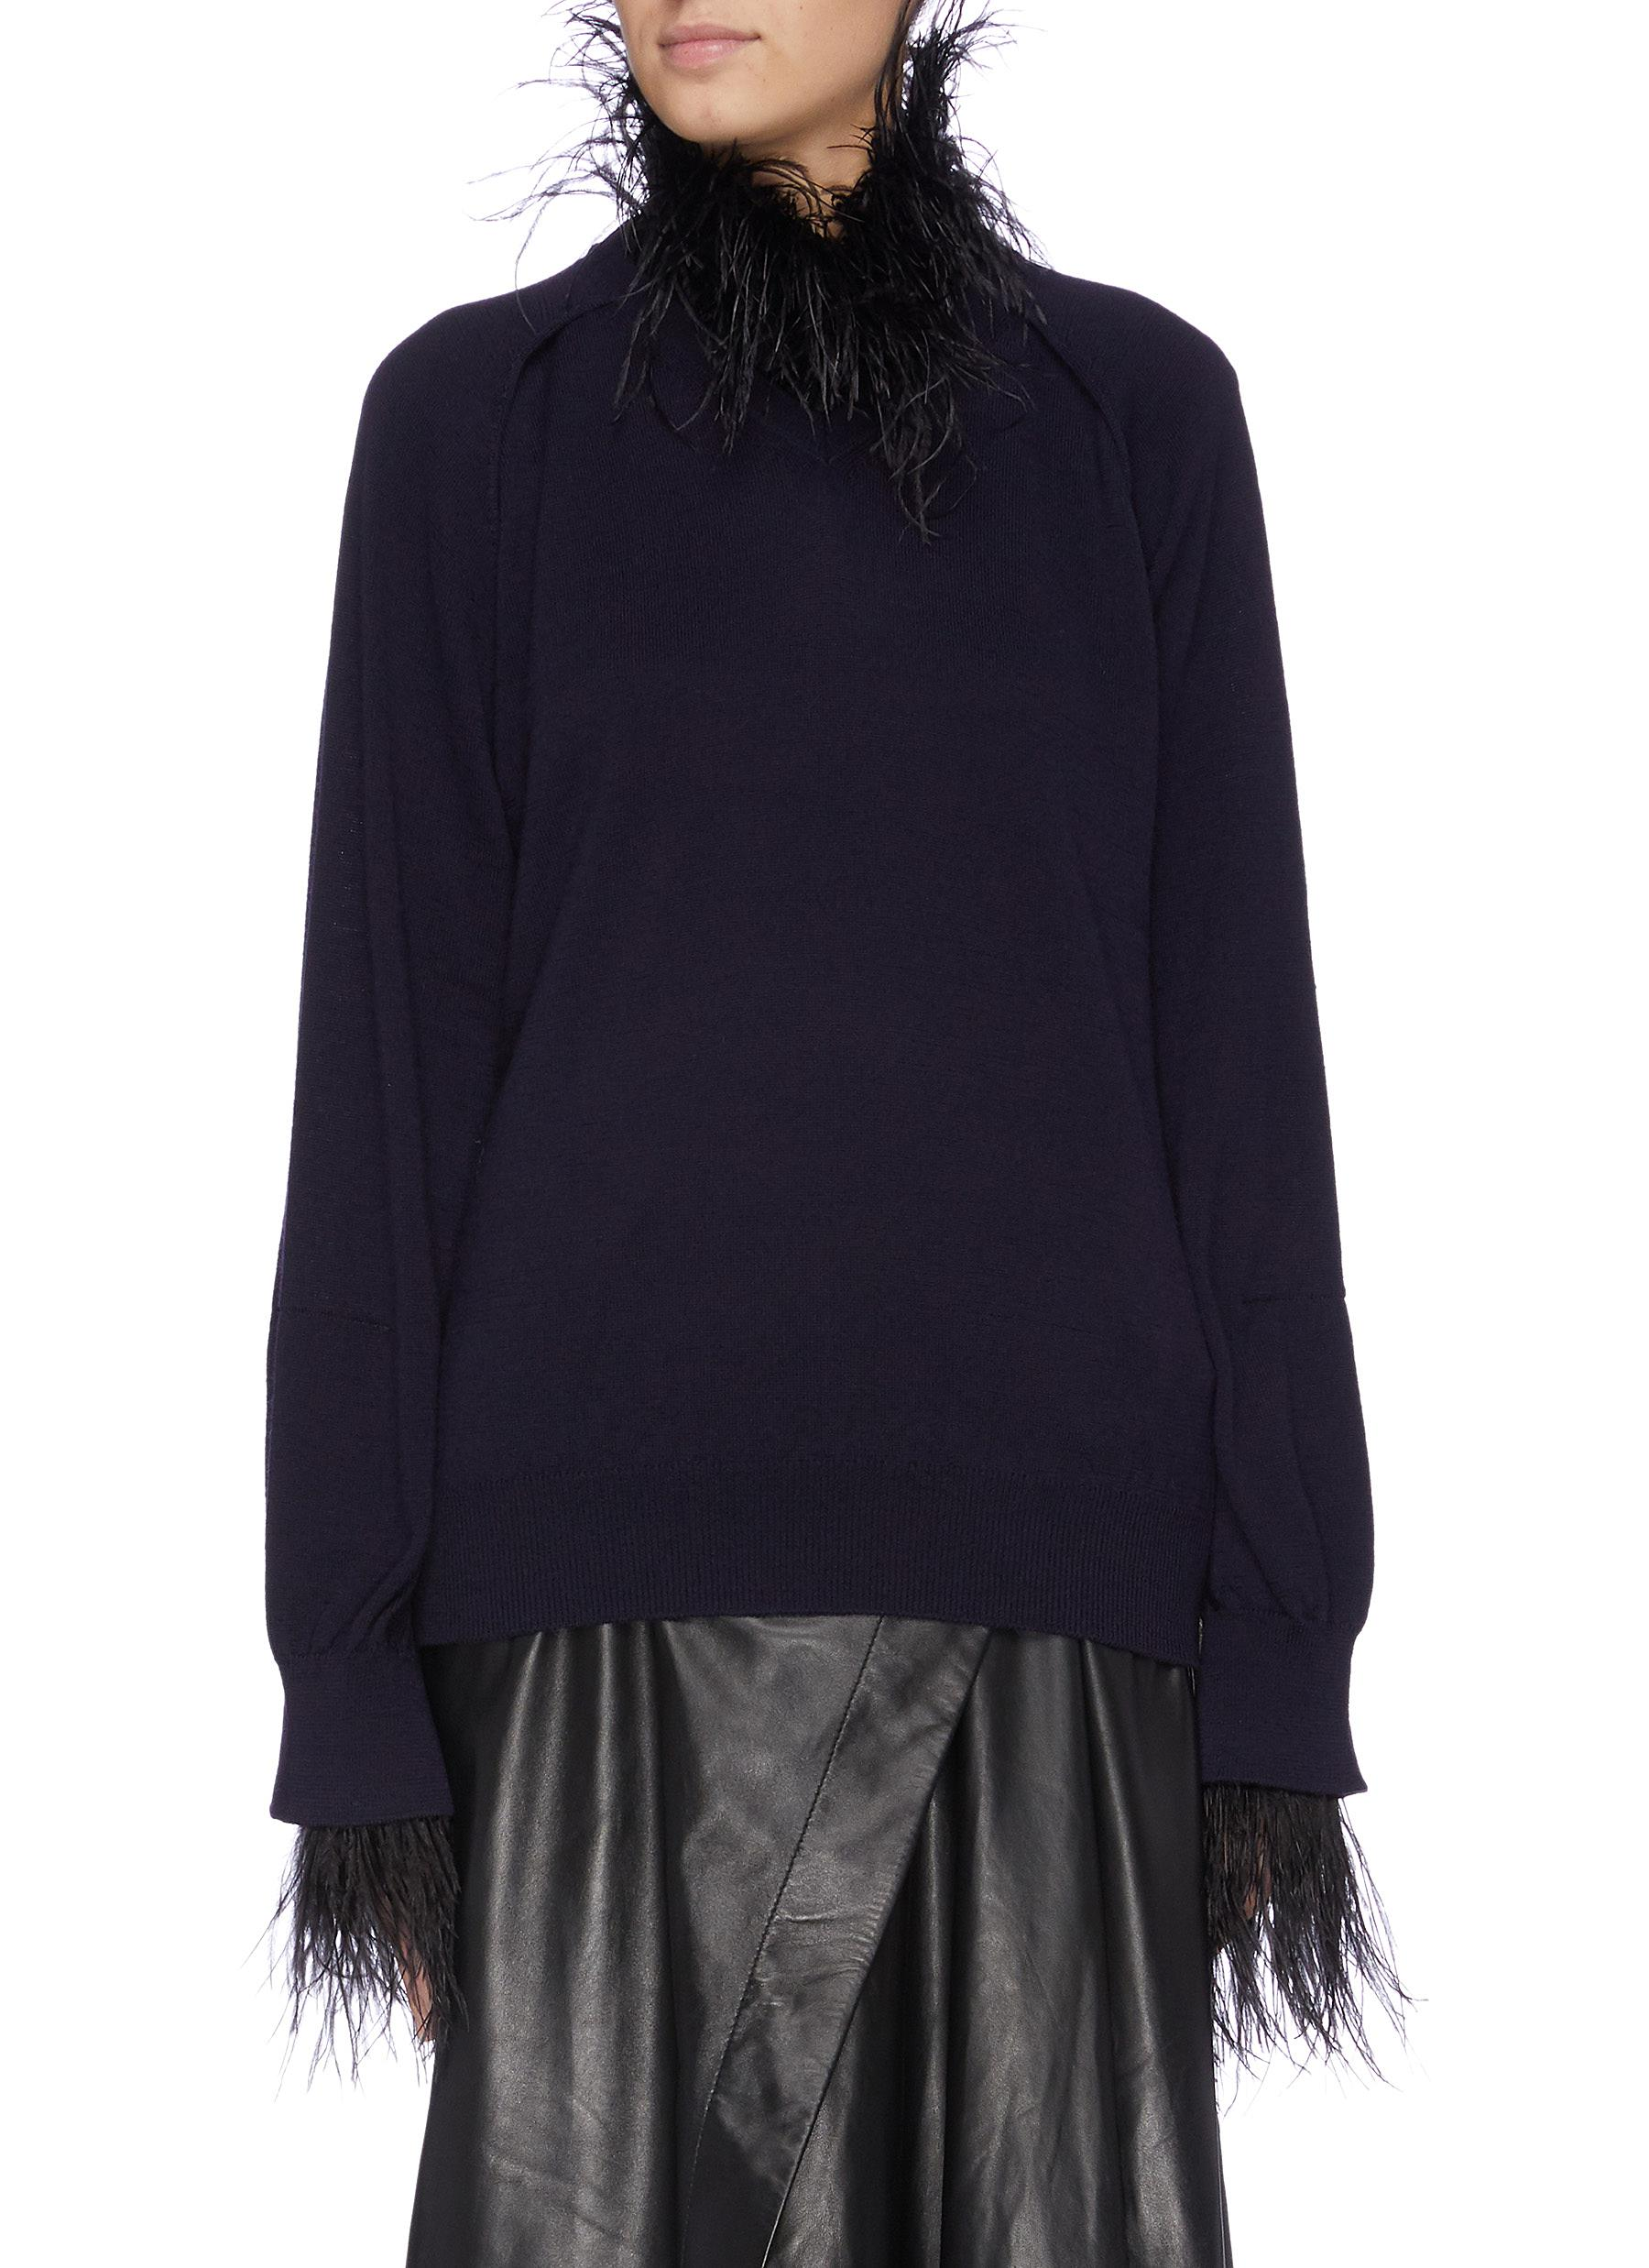 Feather fringe edge sweater by Toga Archives